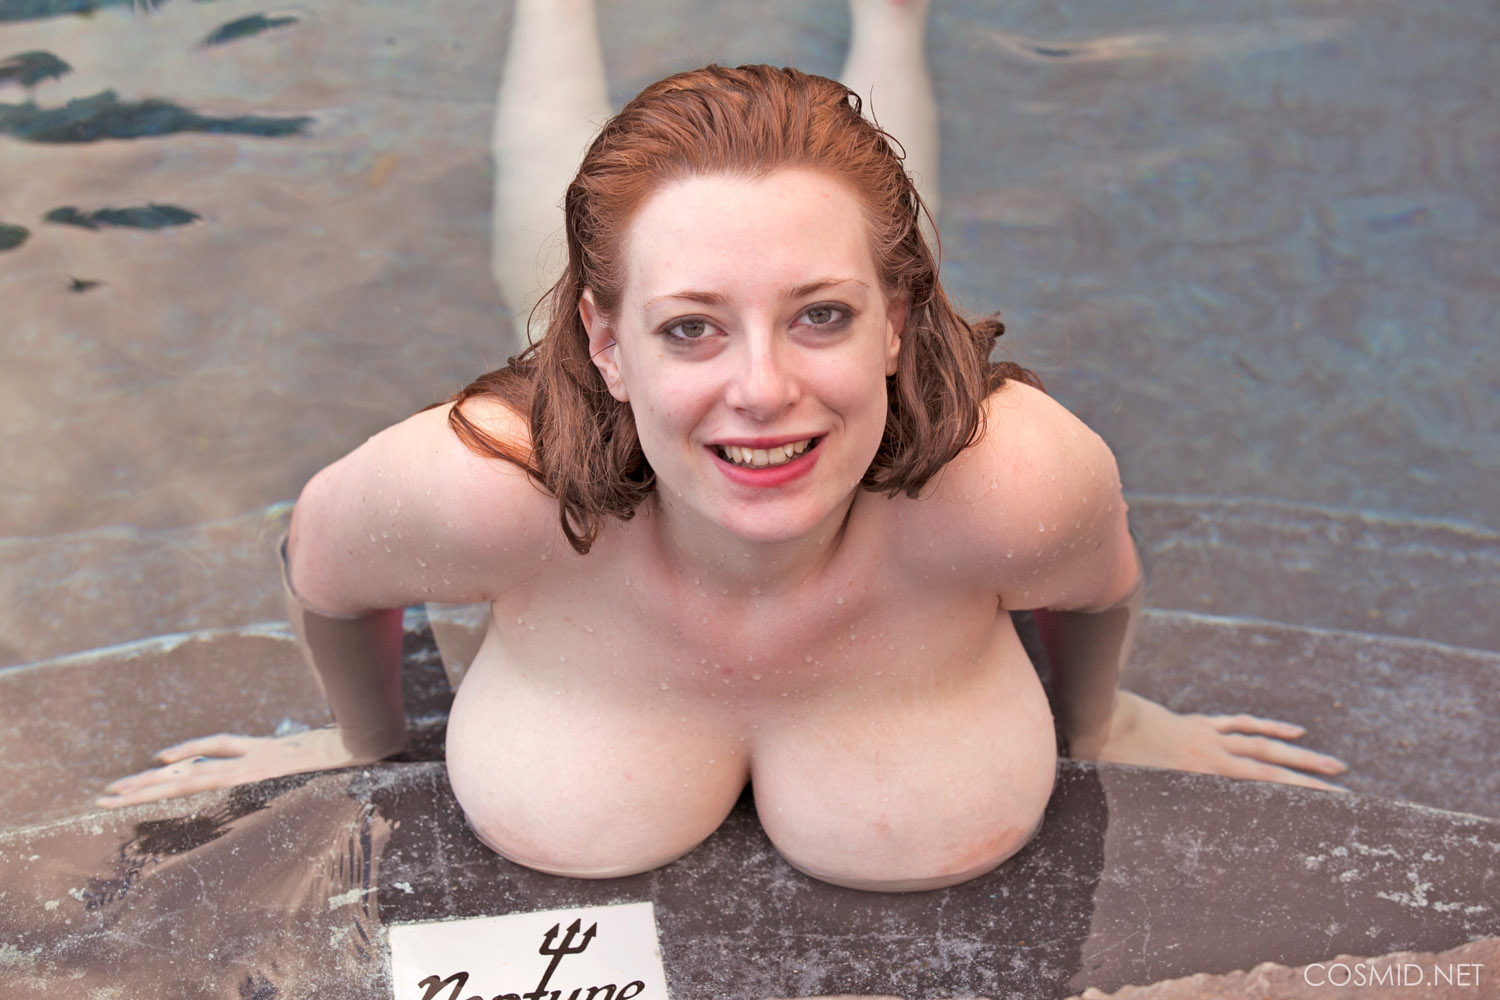 Bubbly redhead shows her body in detail - 3 part 1